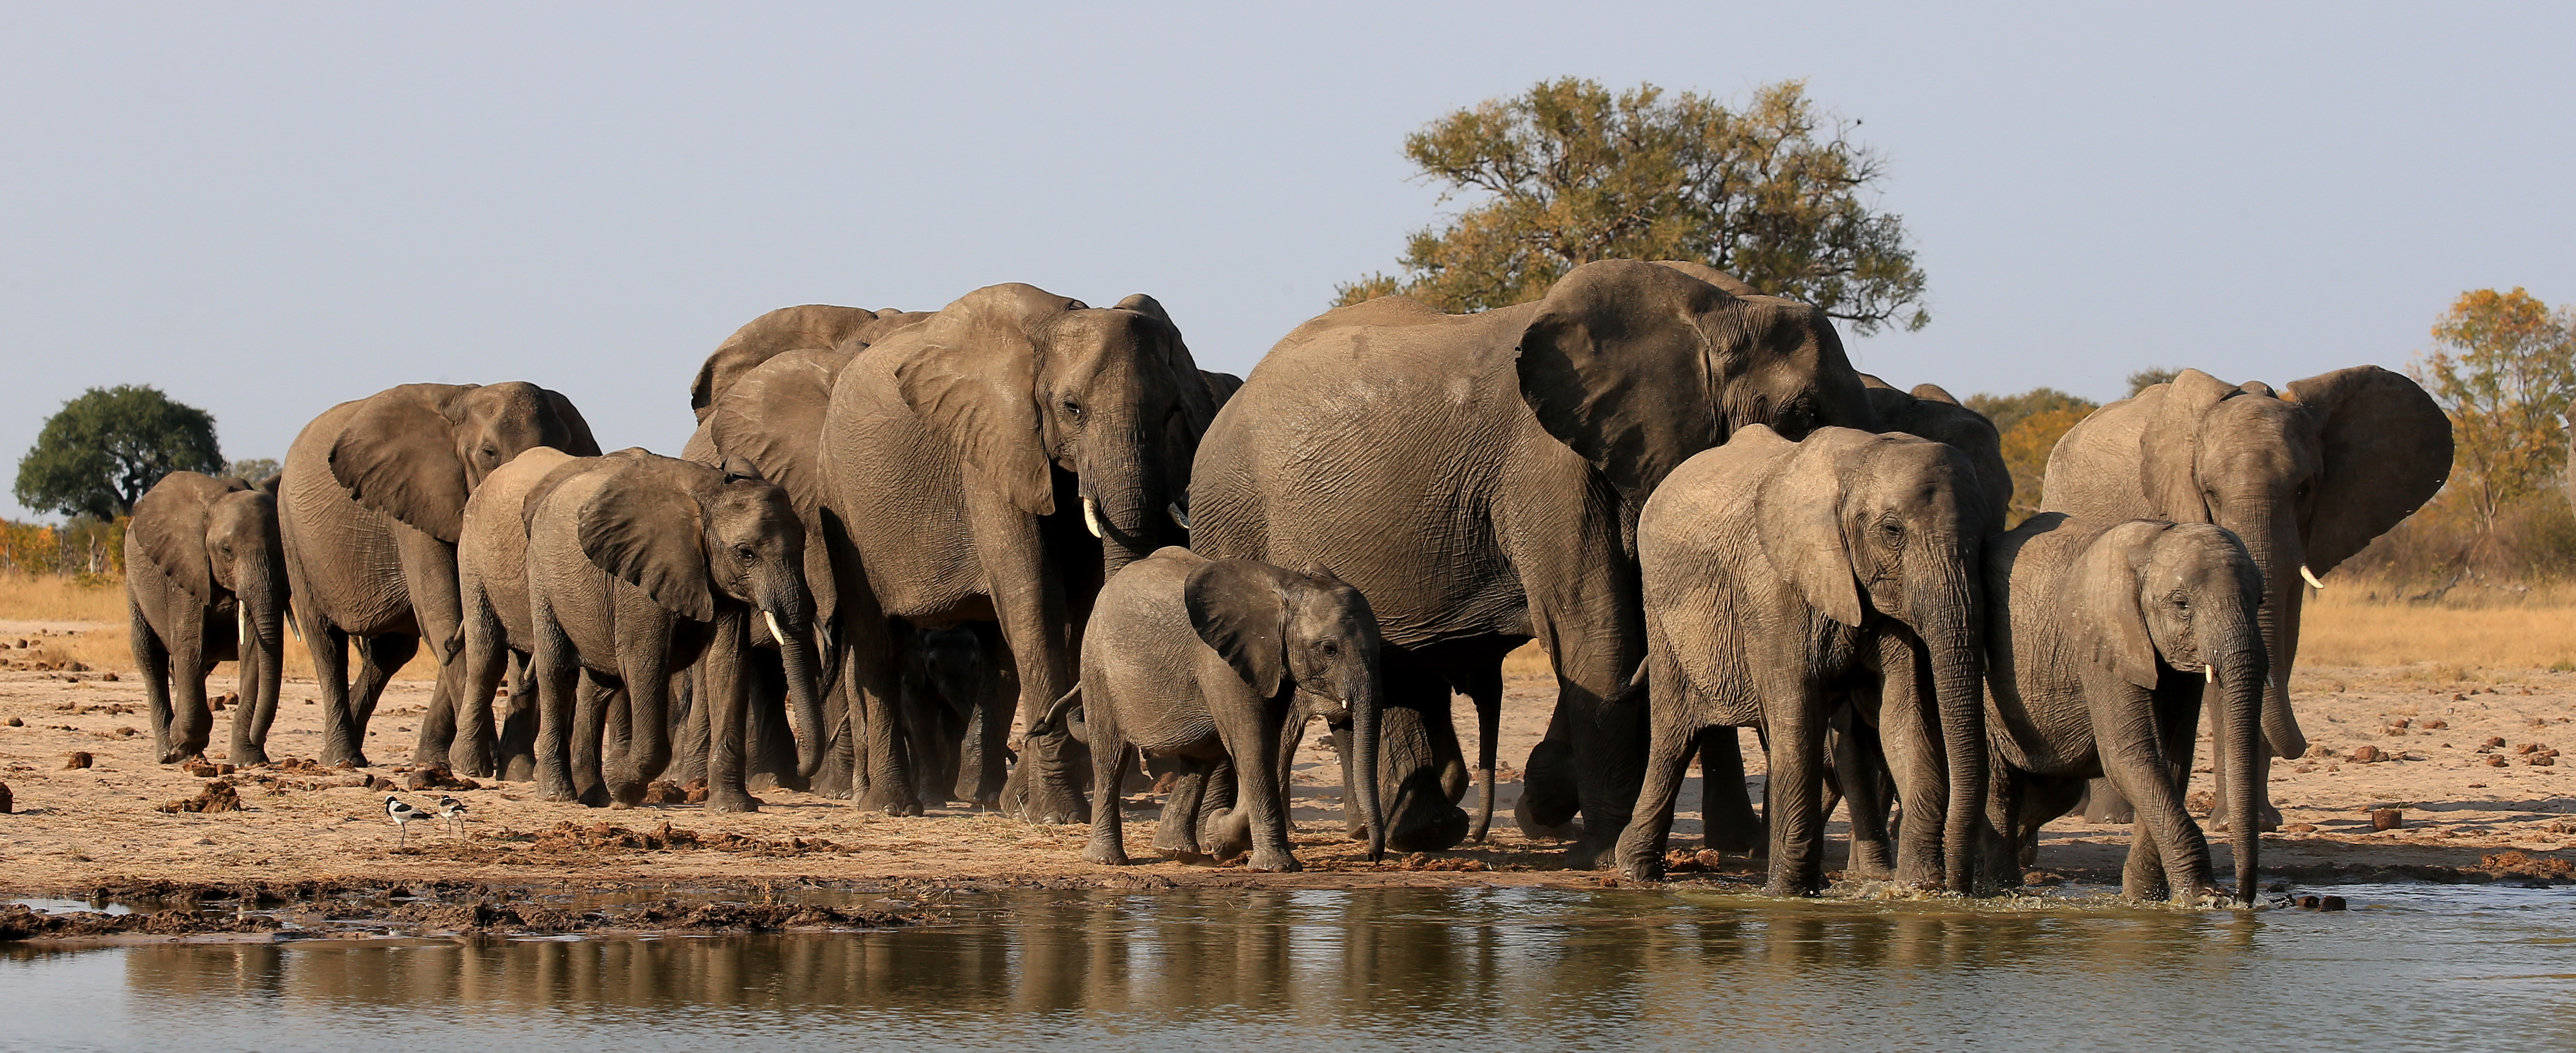 PRESS RELEASE: Elephant Experts From Around the World Oppose ...